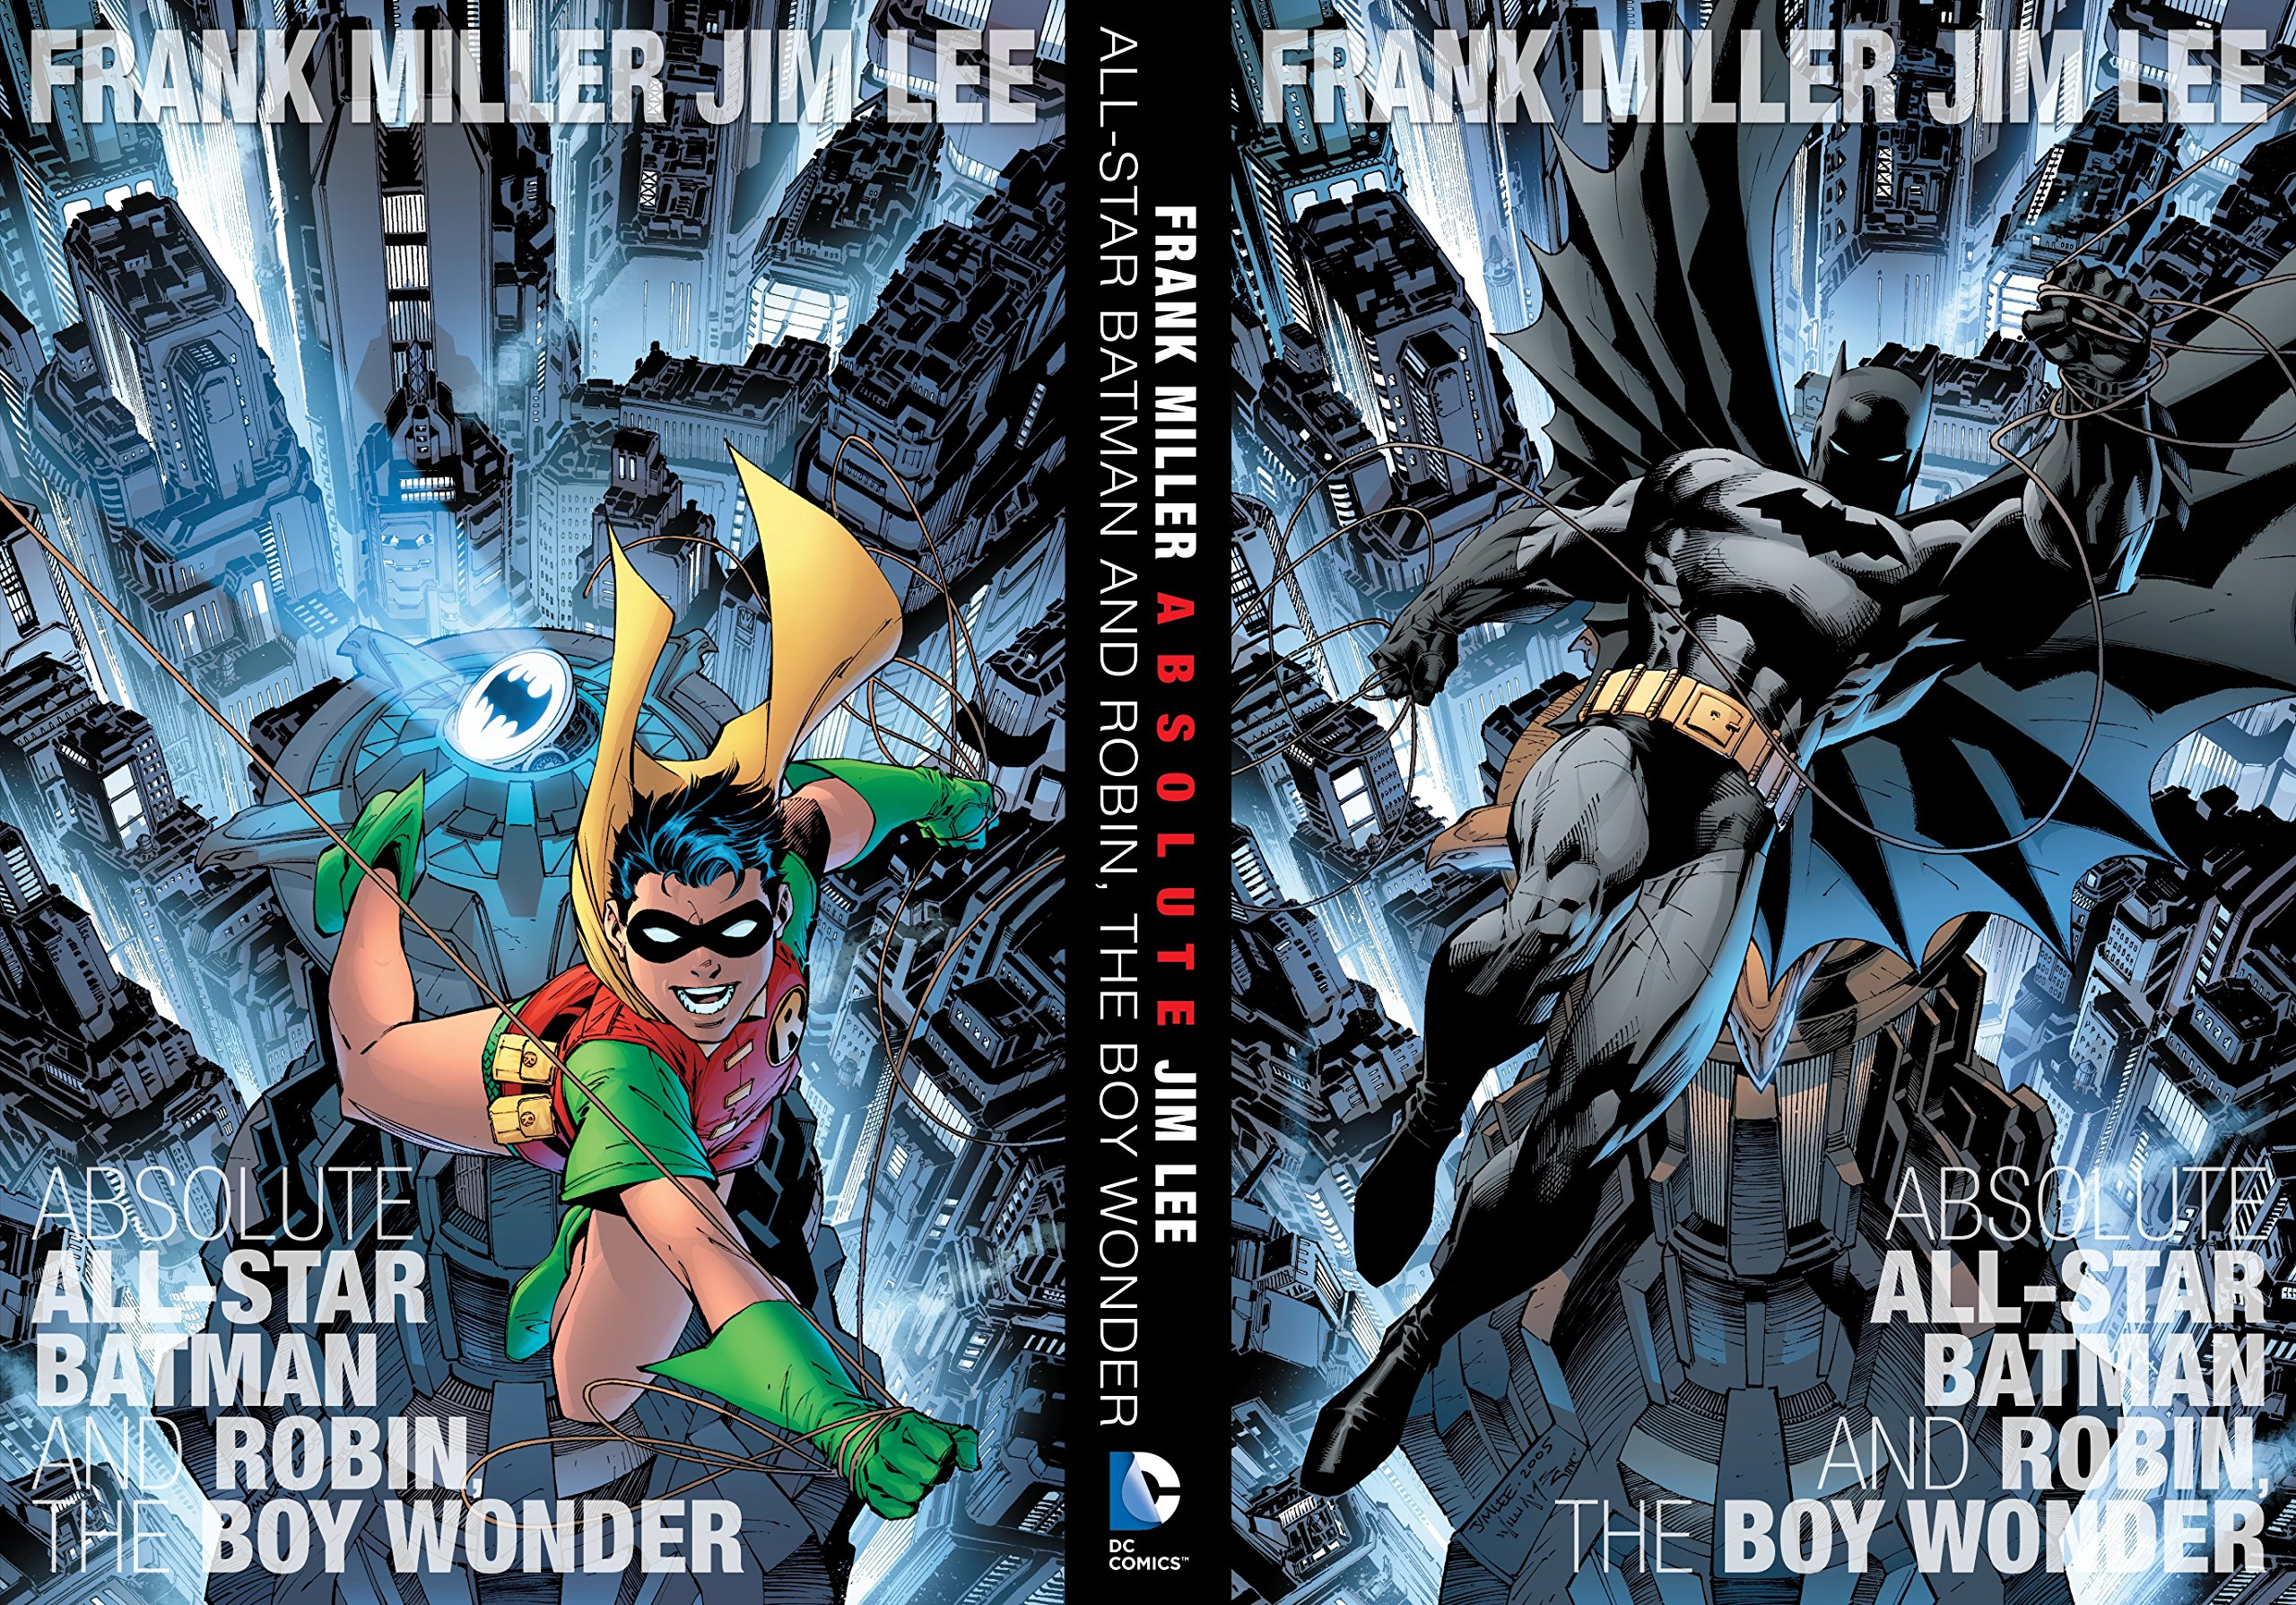 Absolute All-Star Batman And Robin, The Boy Wonder by imusti